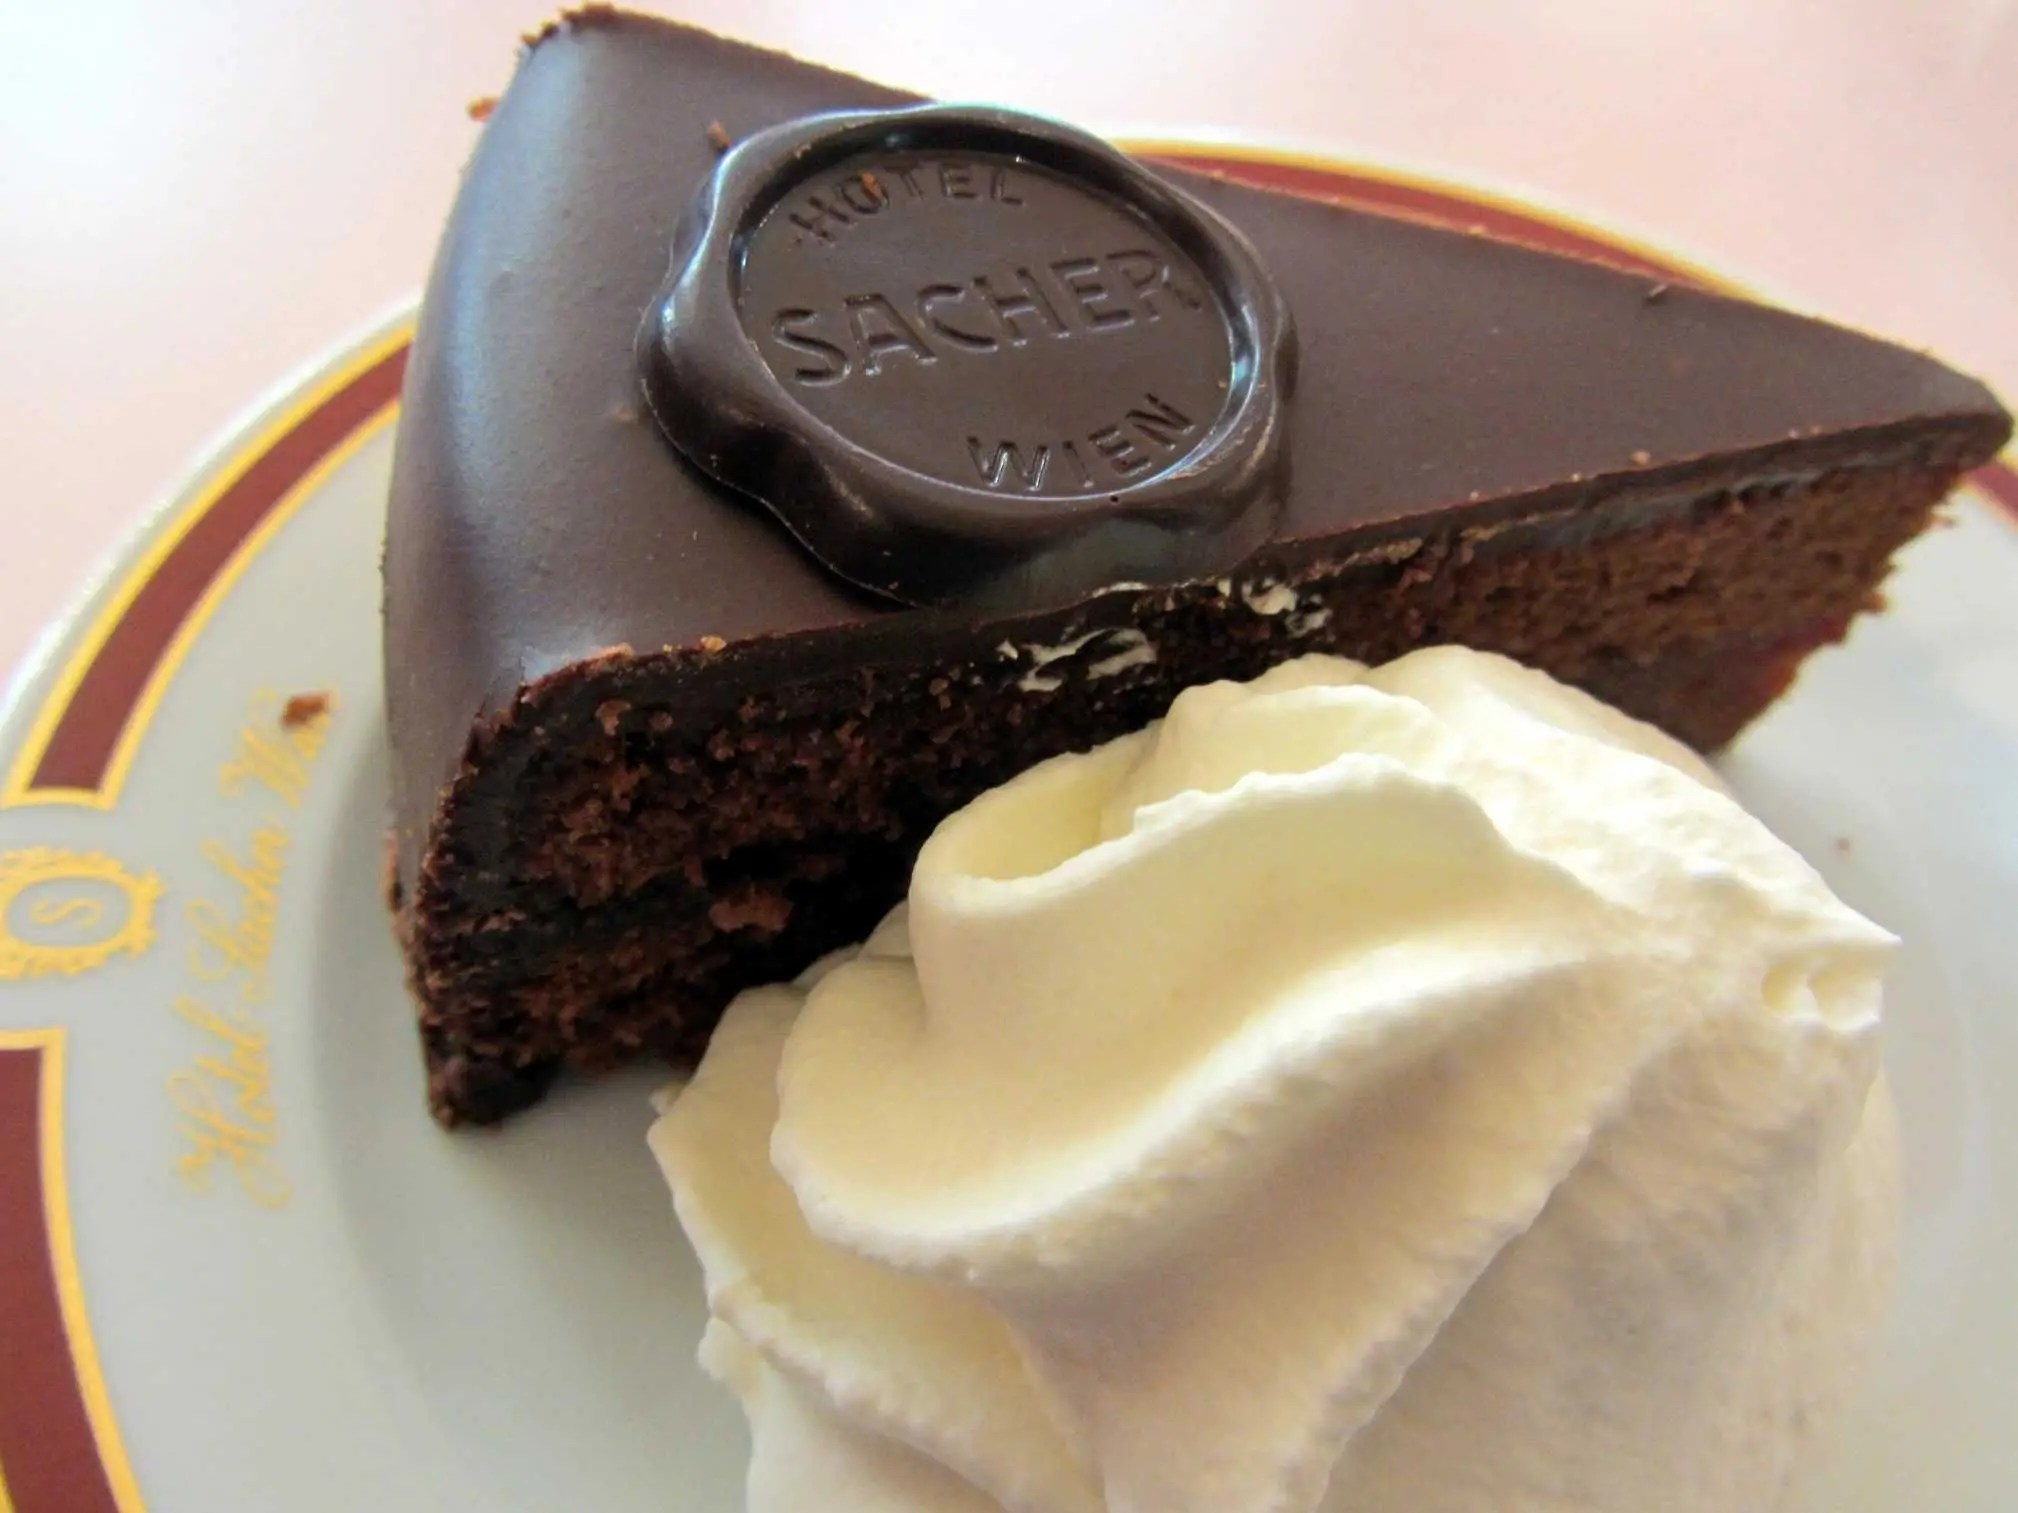 Savor a rich chocolatey Sachertorte in Vienna, Austria.